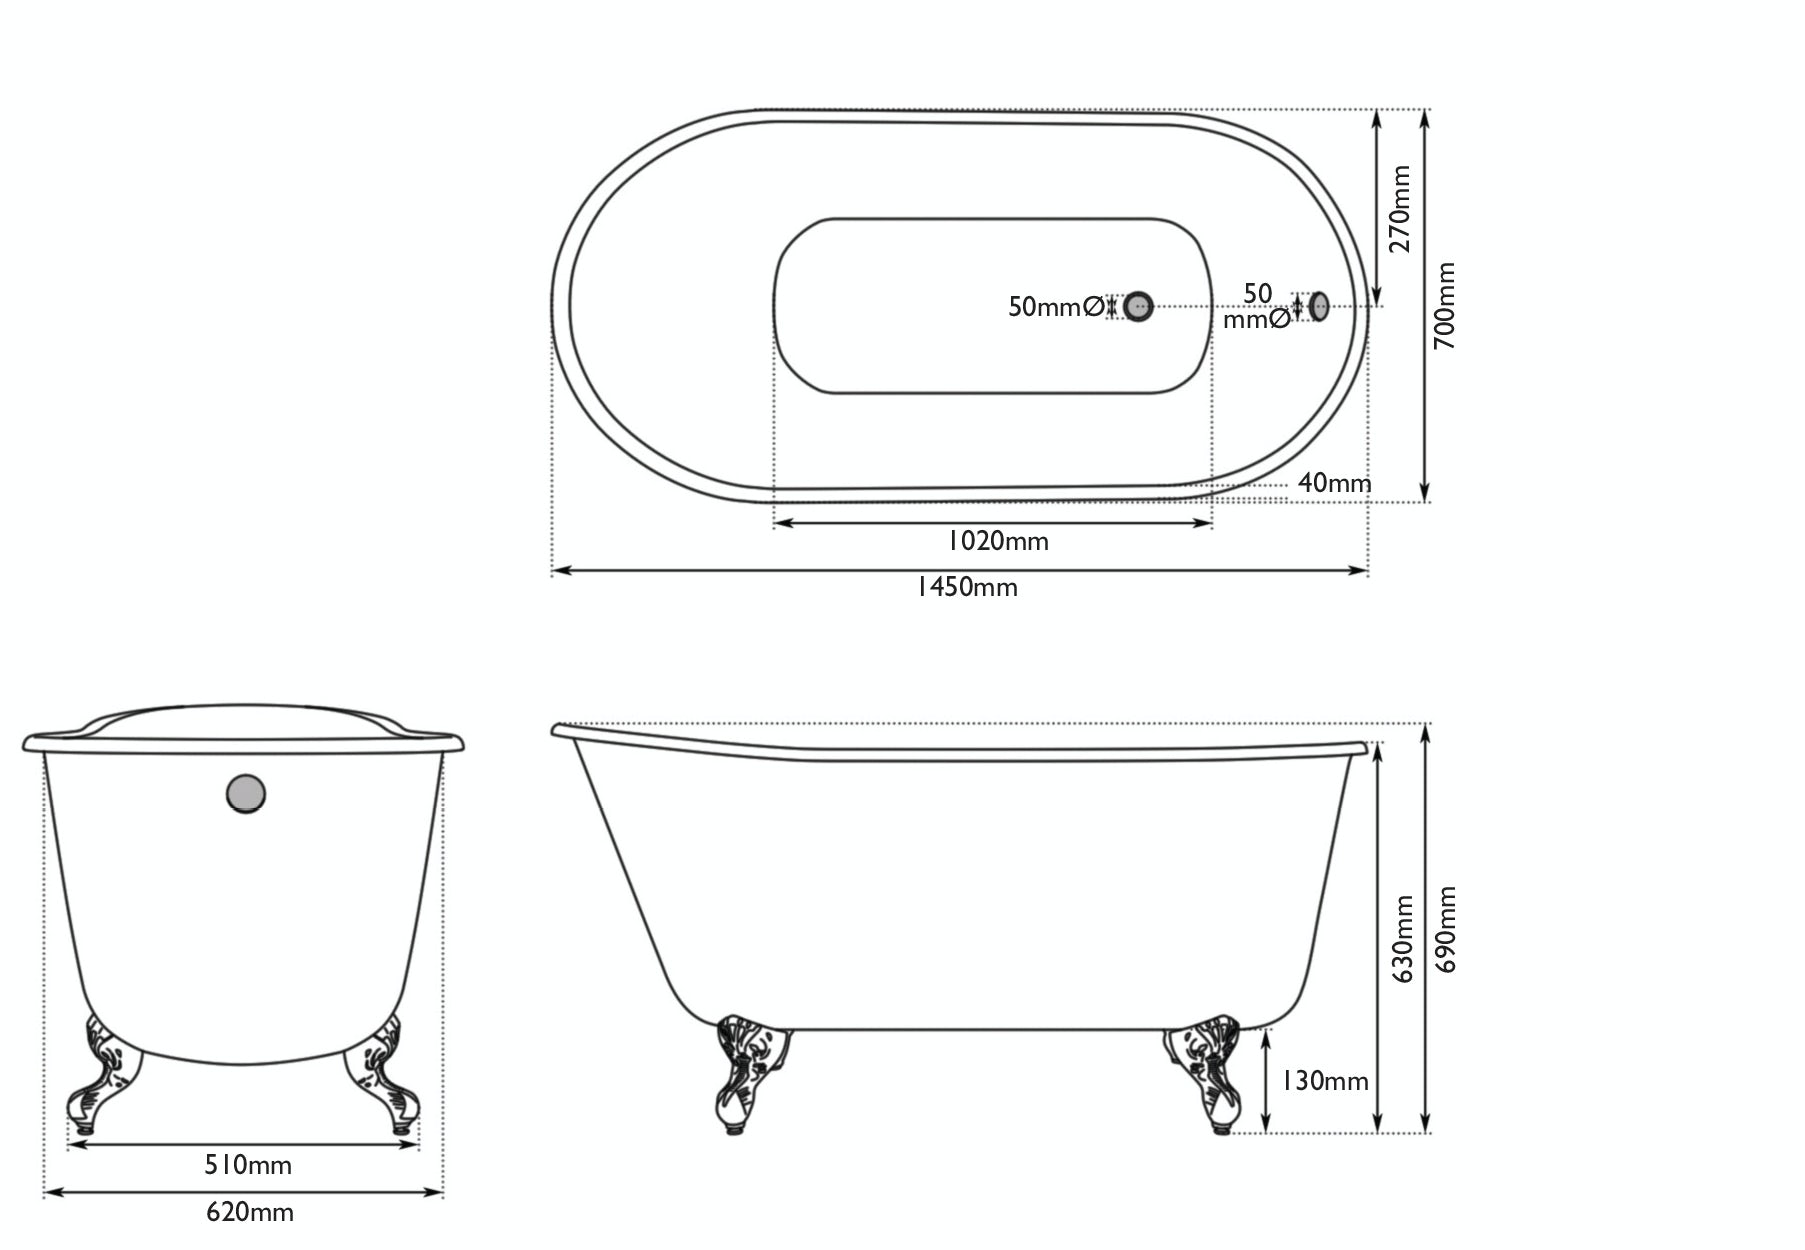 Dimensions for The Bath Co. Warwick province blue cast iron bath